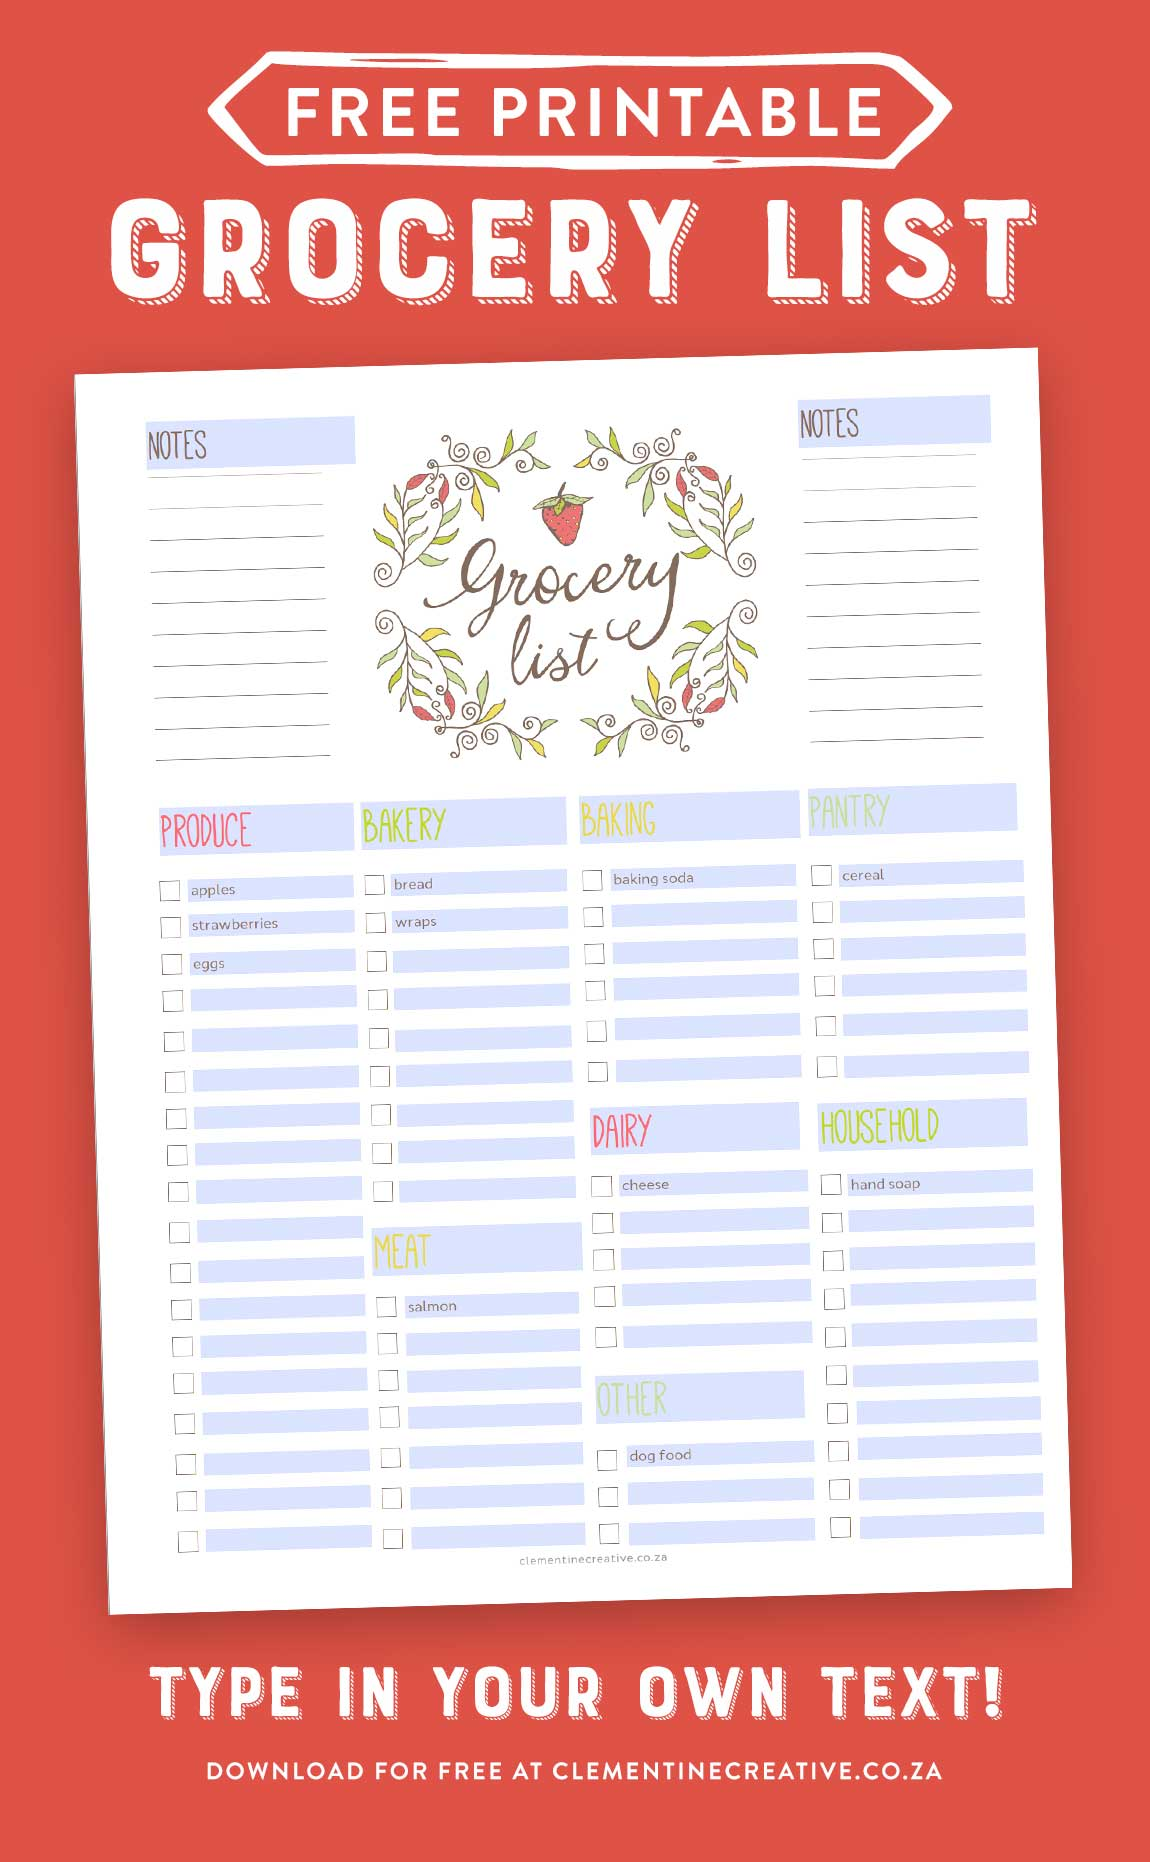 picture about Printable Grocery List by Category named Absolutely free Editable Grocery Checklist Printable PDF